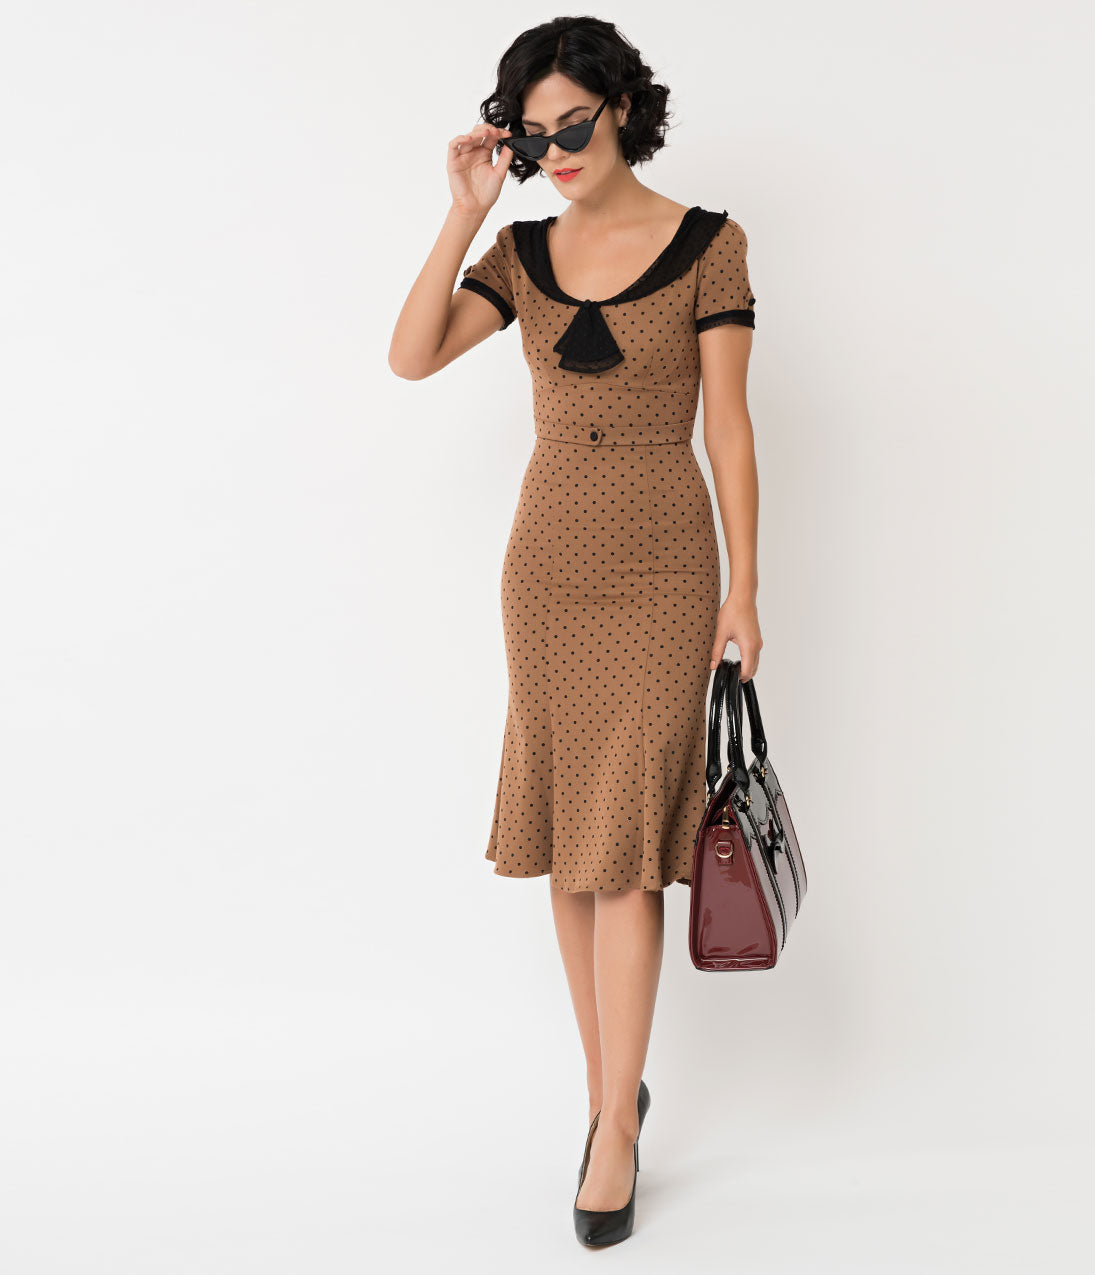 Polka Dot Dresses: 20s, 30s, 40s, 50s, 60s Stop Staring 1930S Tan  Black Dot Railene Dress $172.00 AT vintagedancer.com